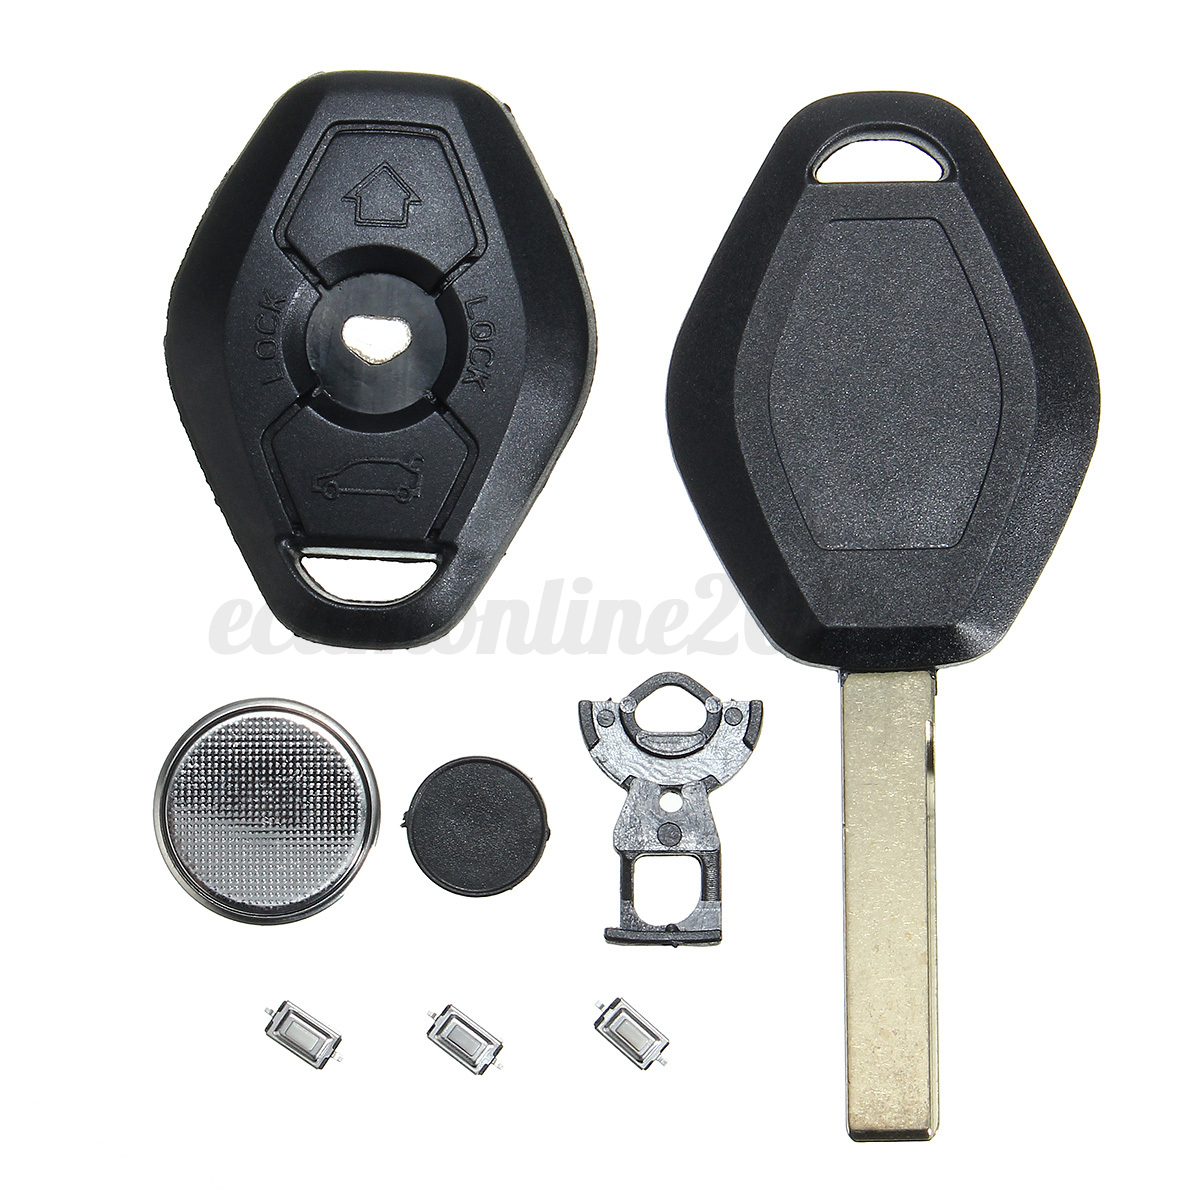 Bmw Z3 Key Fob: 3-Button Remote Key Fob Case Repair For BMW E46 3 5 7 Z3